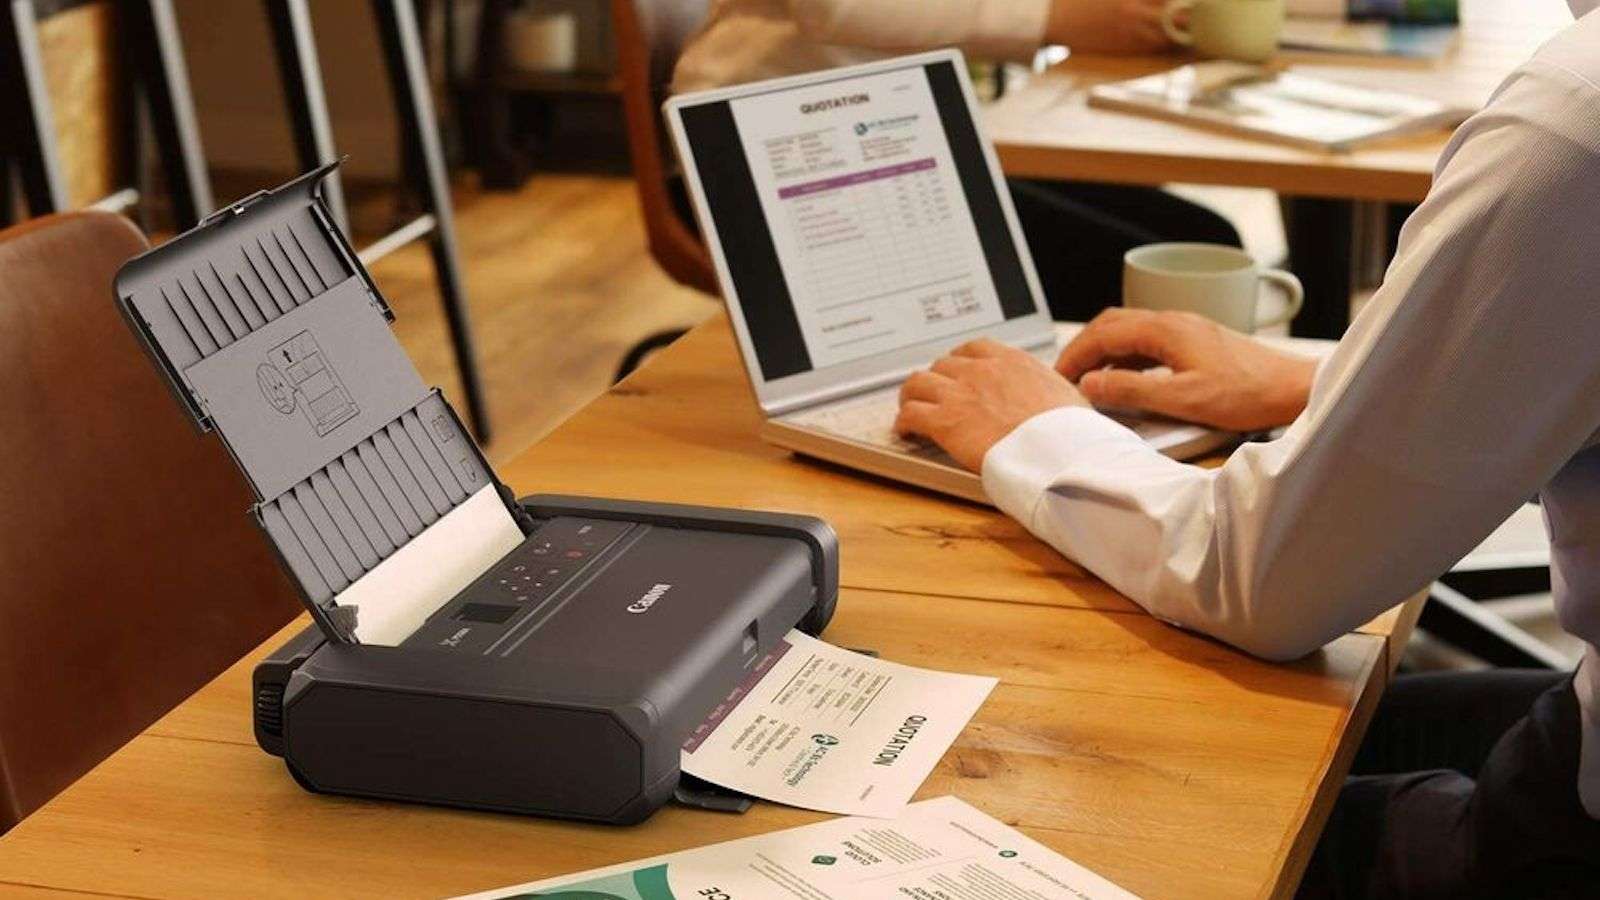 Canon Pixma TR150 Wireless Printer is compact and portable for traveling